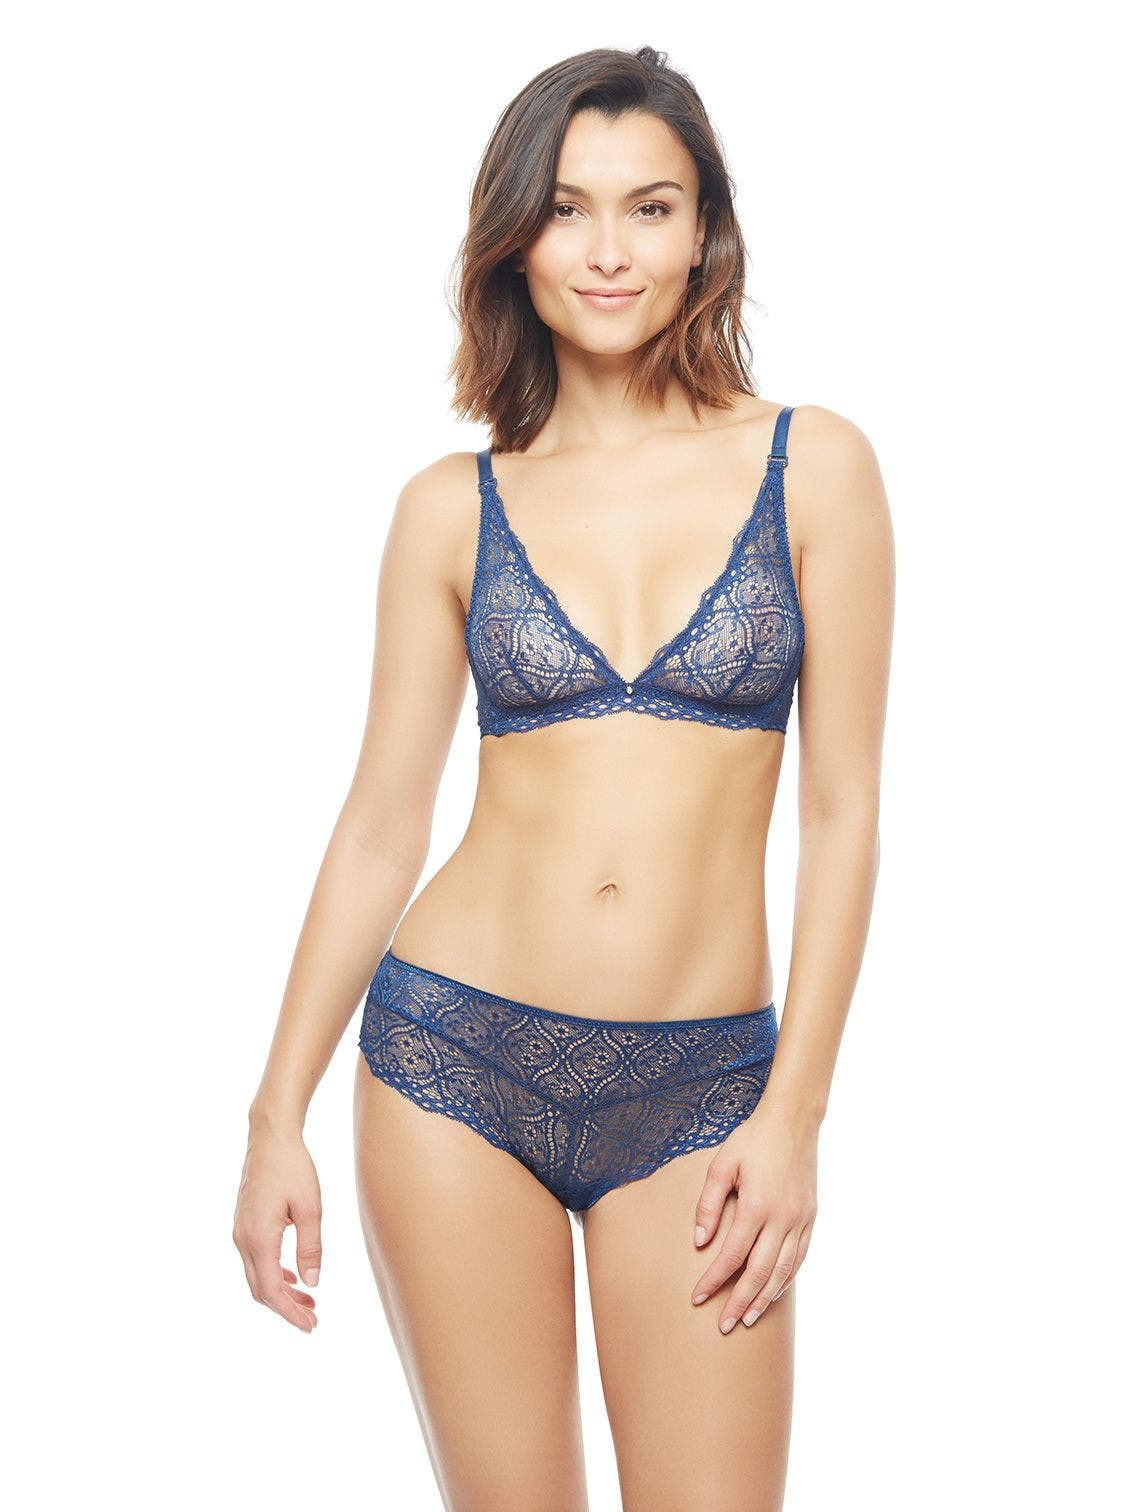 Soutien-gorge triangle sans armature - Twilight